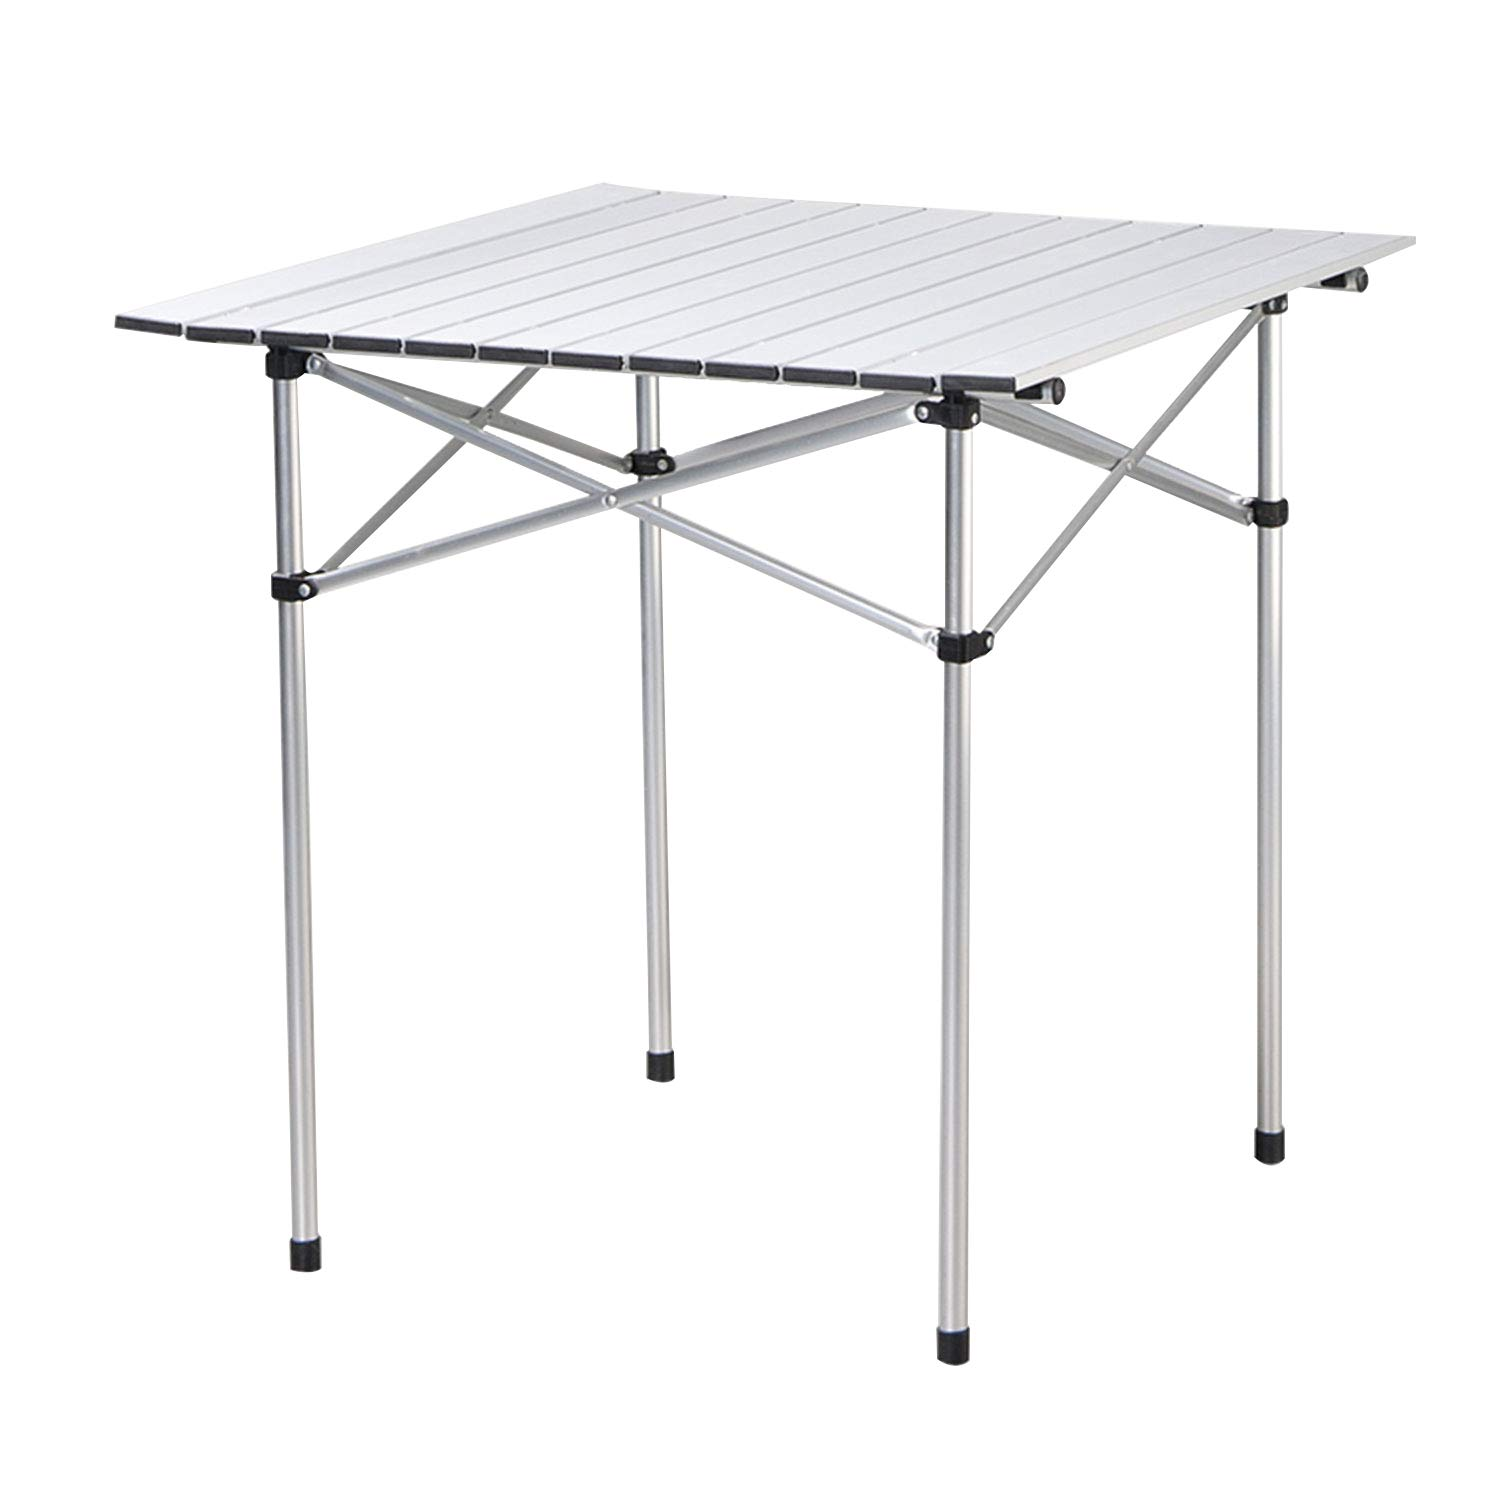 Deanurs Roll Up Portable Aluminum Folding Camping Square Tables PicnicTable for Outdoor Camping Hiking Lightweight Picnic Table , 28'' x 28''w/Carry Bag,Silver by Deanurs